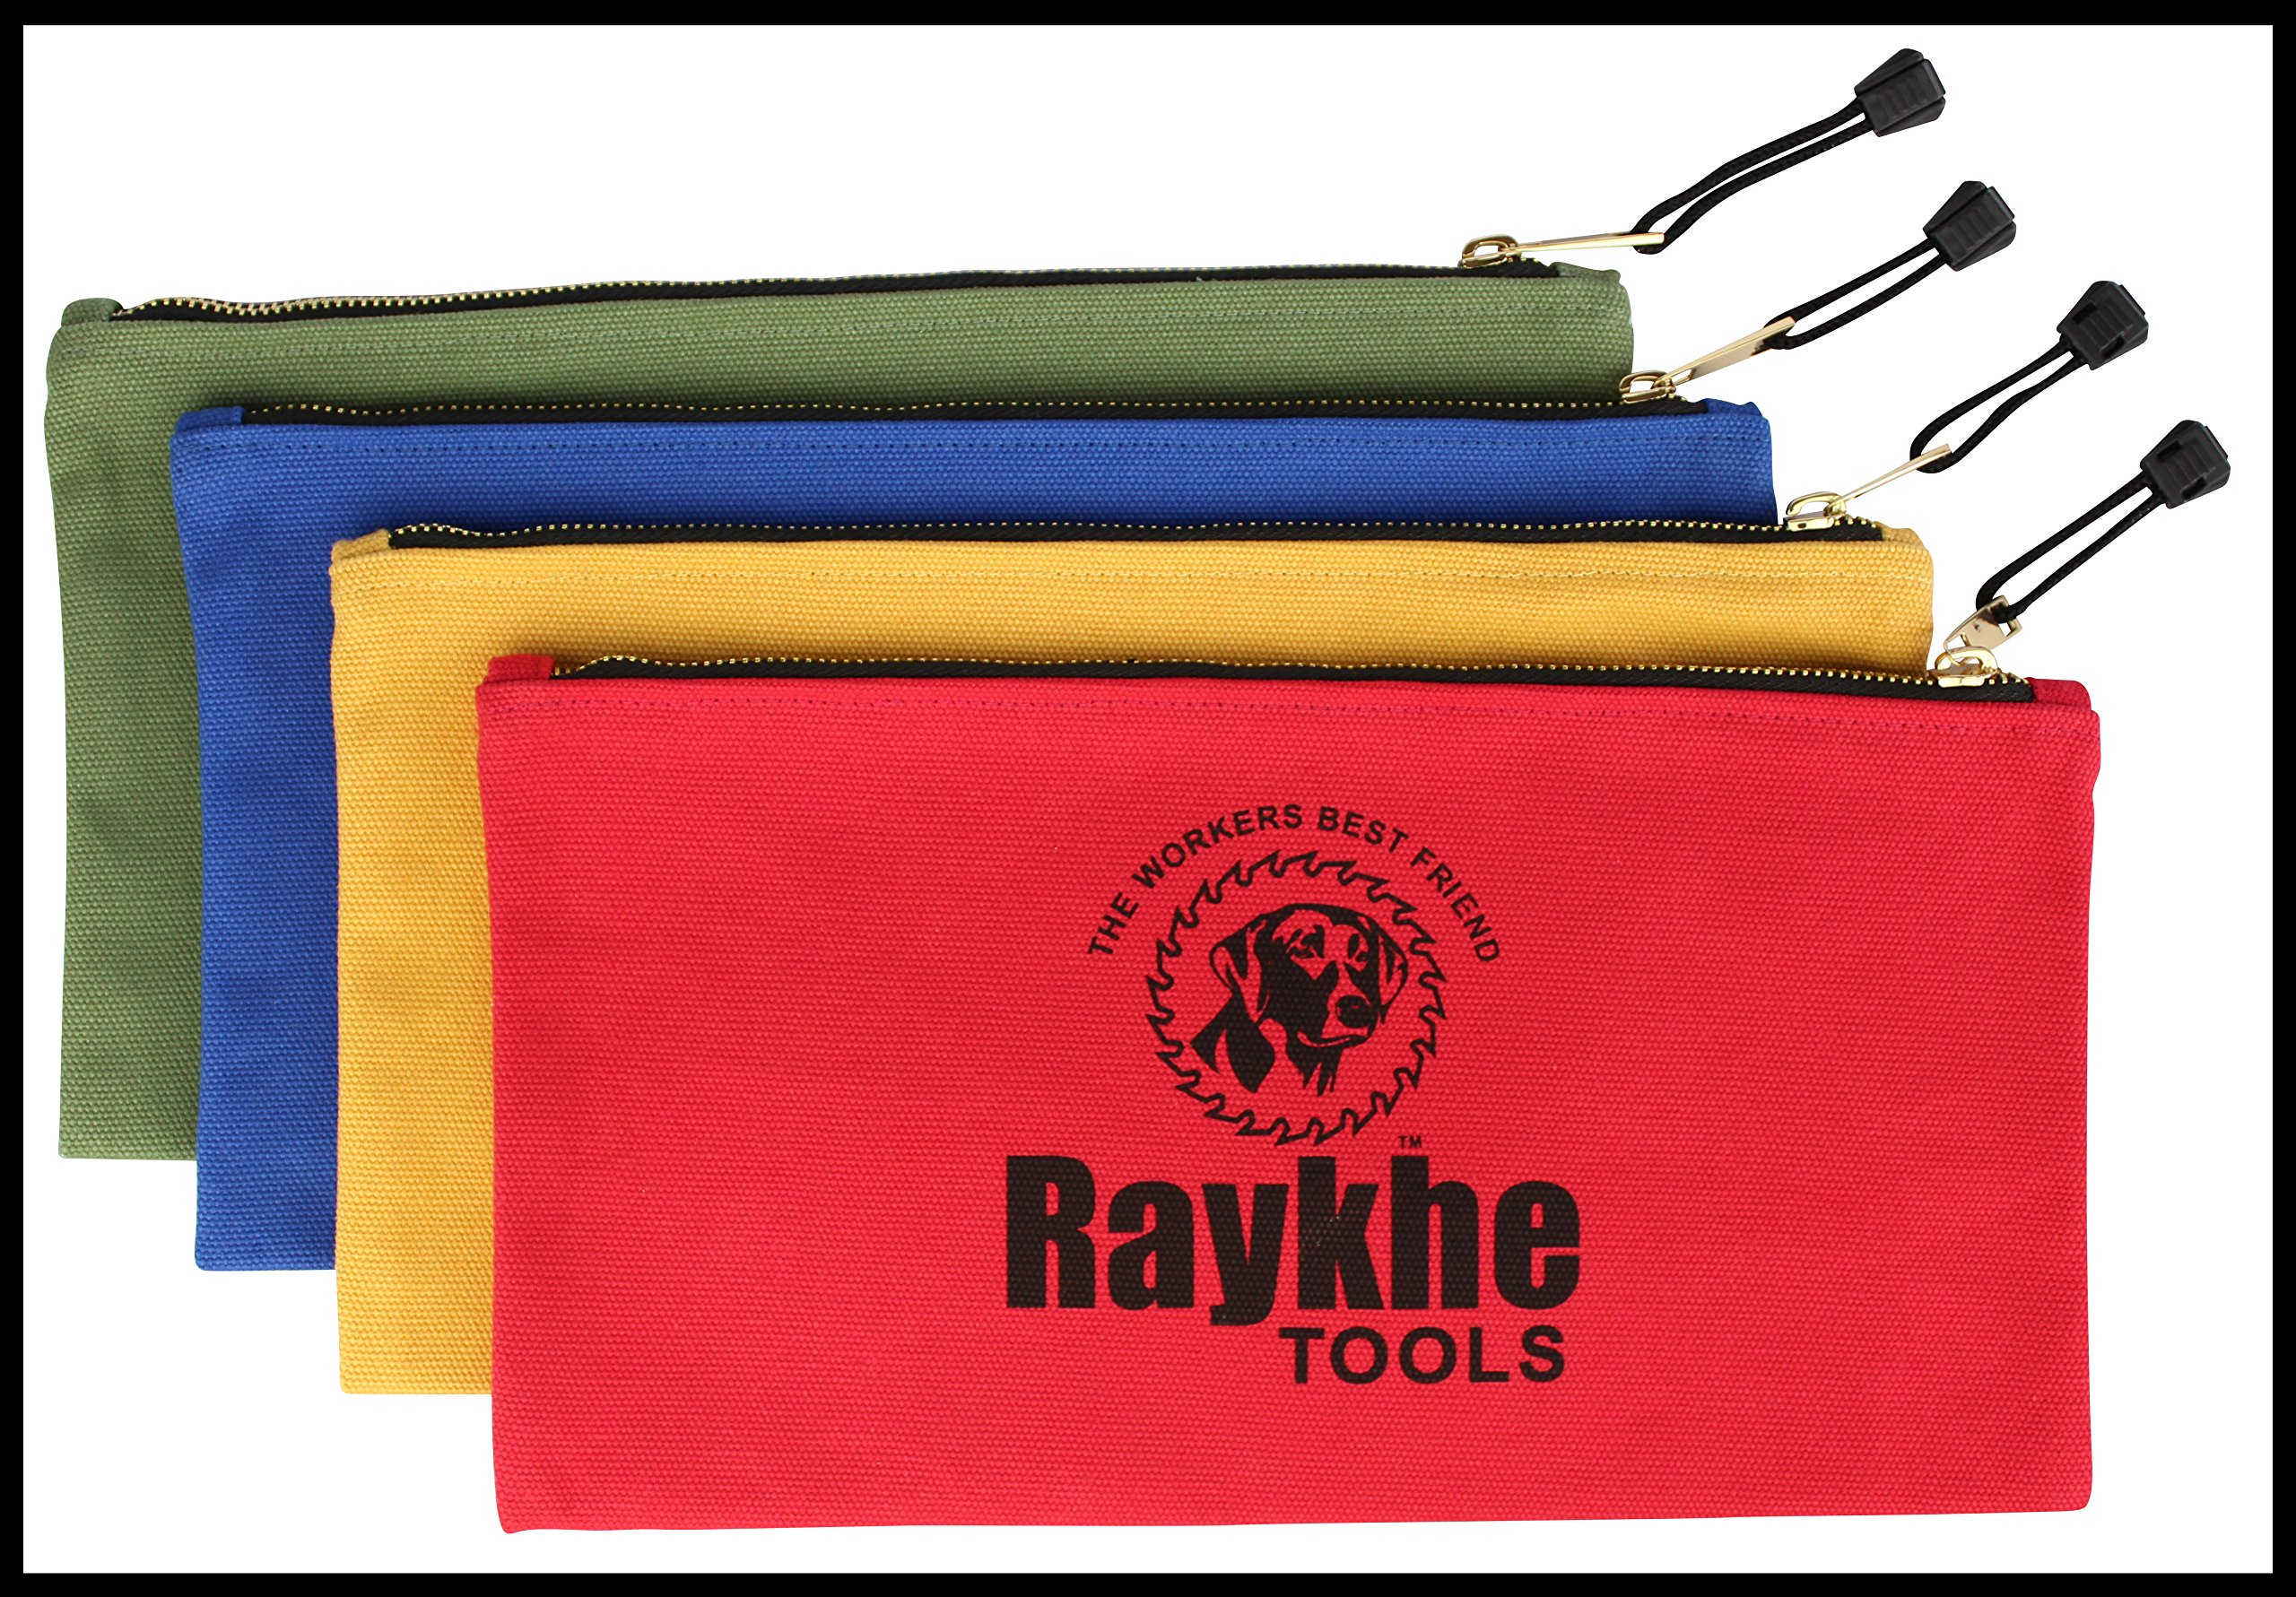 Canvas Zipper Tool Bags 12.5'' x 7'' - 4 Pack - 20oz Heavy Duty Canvas With Large Zipper - Canvas Tool Pouches - Professional Grade - The toughest canvas on the market for this size of bag!